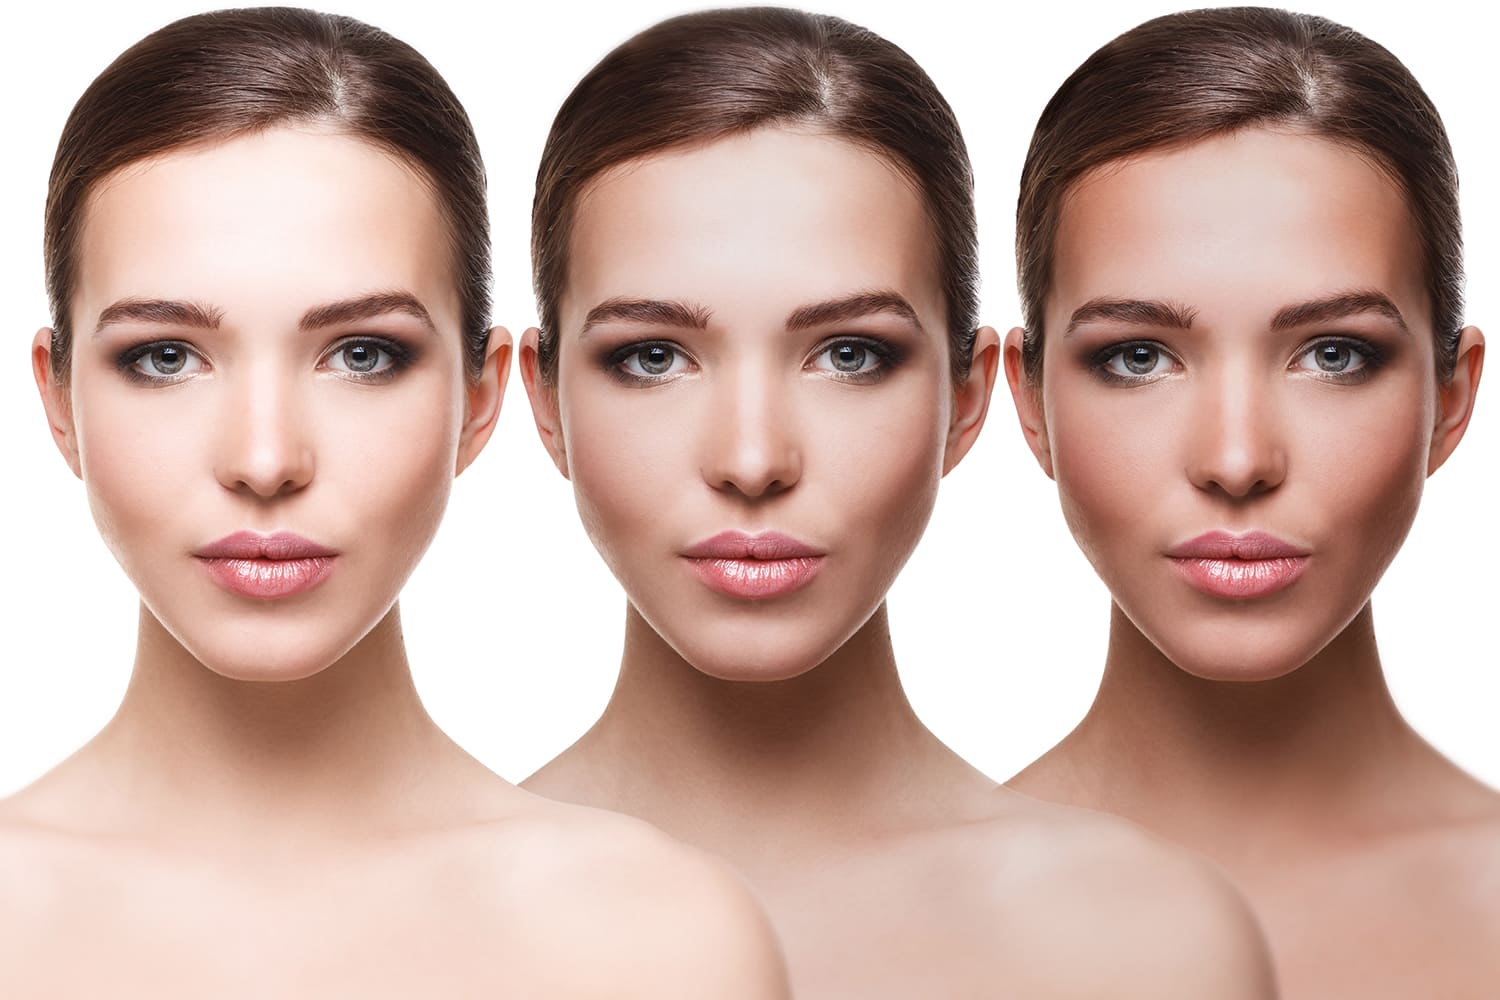 Transition of woman before and after a tanning session. For use on Spray Tanning Course page.